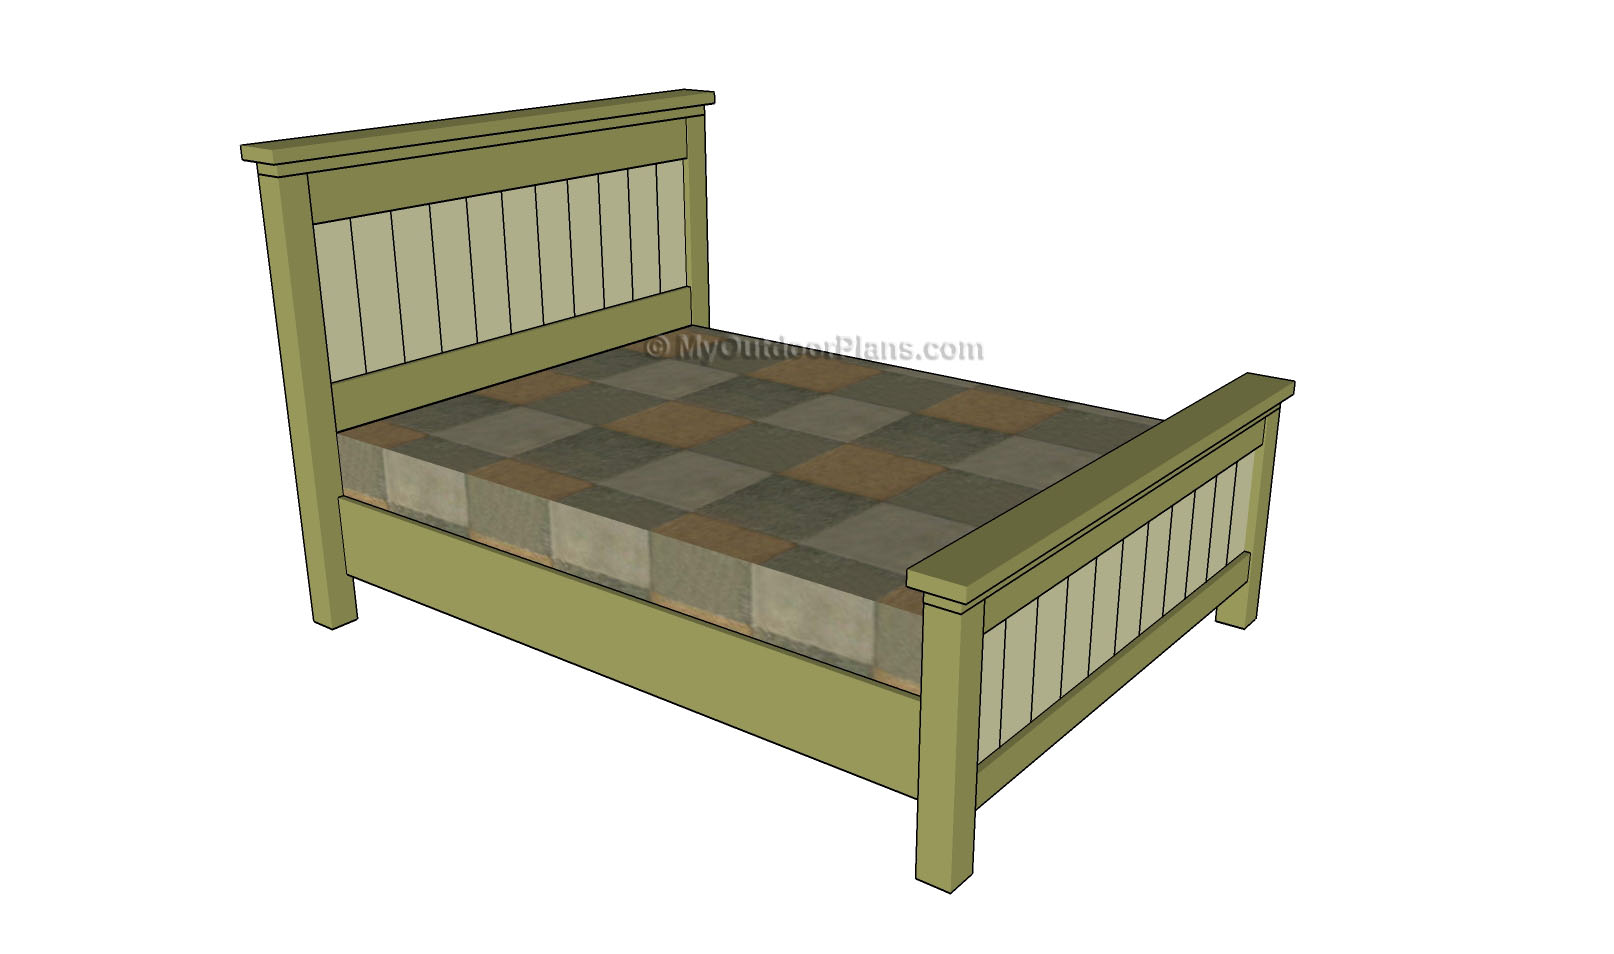 Queensize Kingsize King Size Bed Frame Plans Myoutdoorplans Free